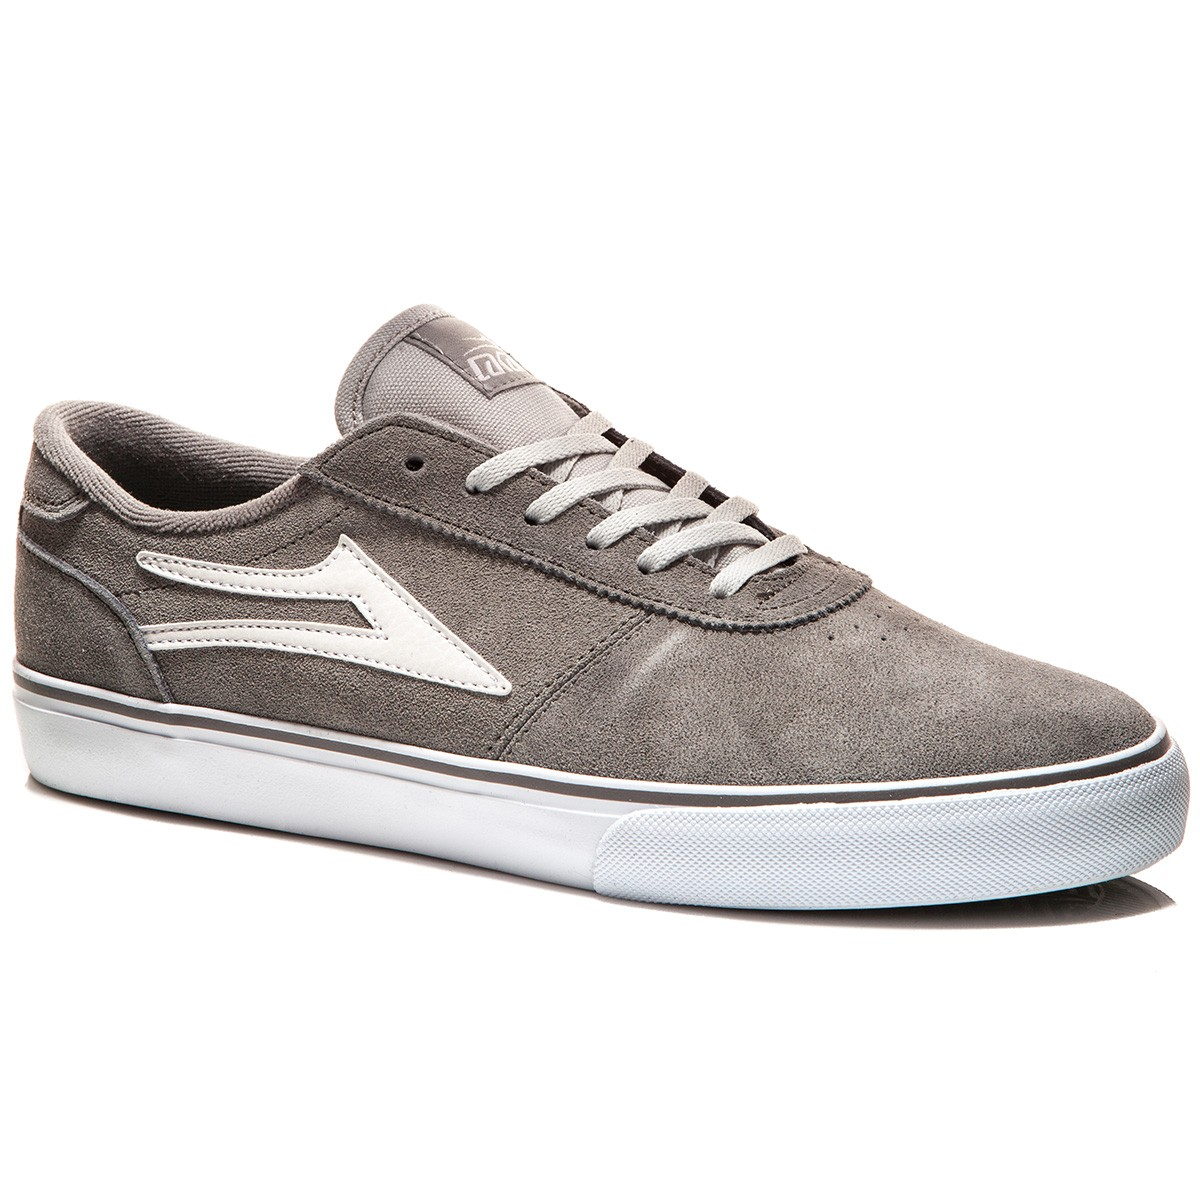 Lakai Manchester Shoes - Grey Suede - 8.0